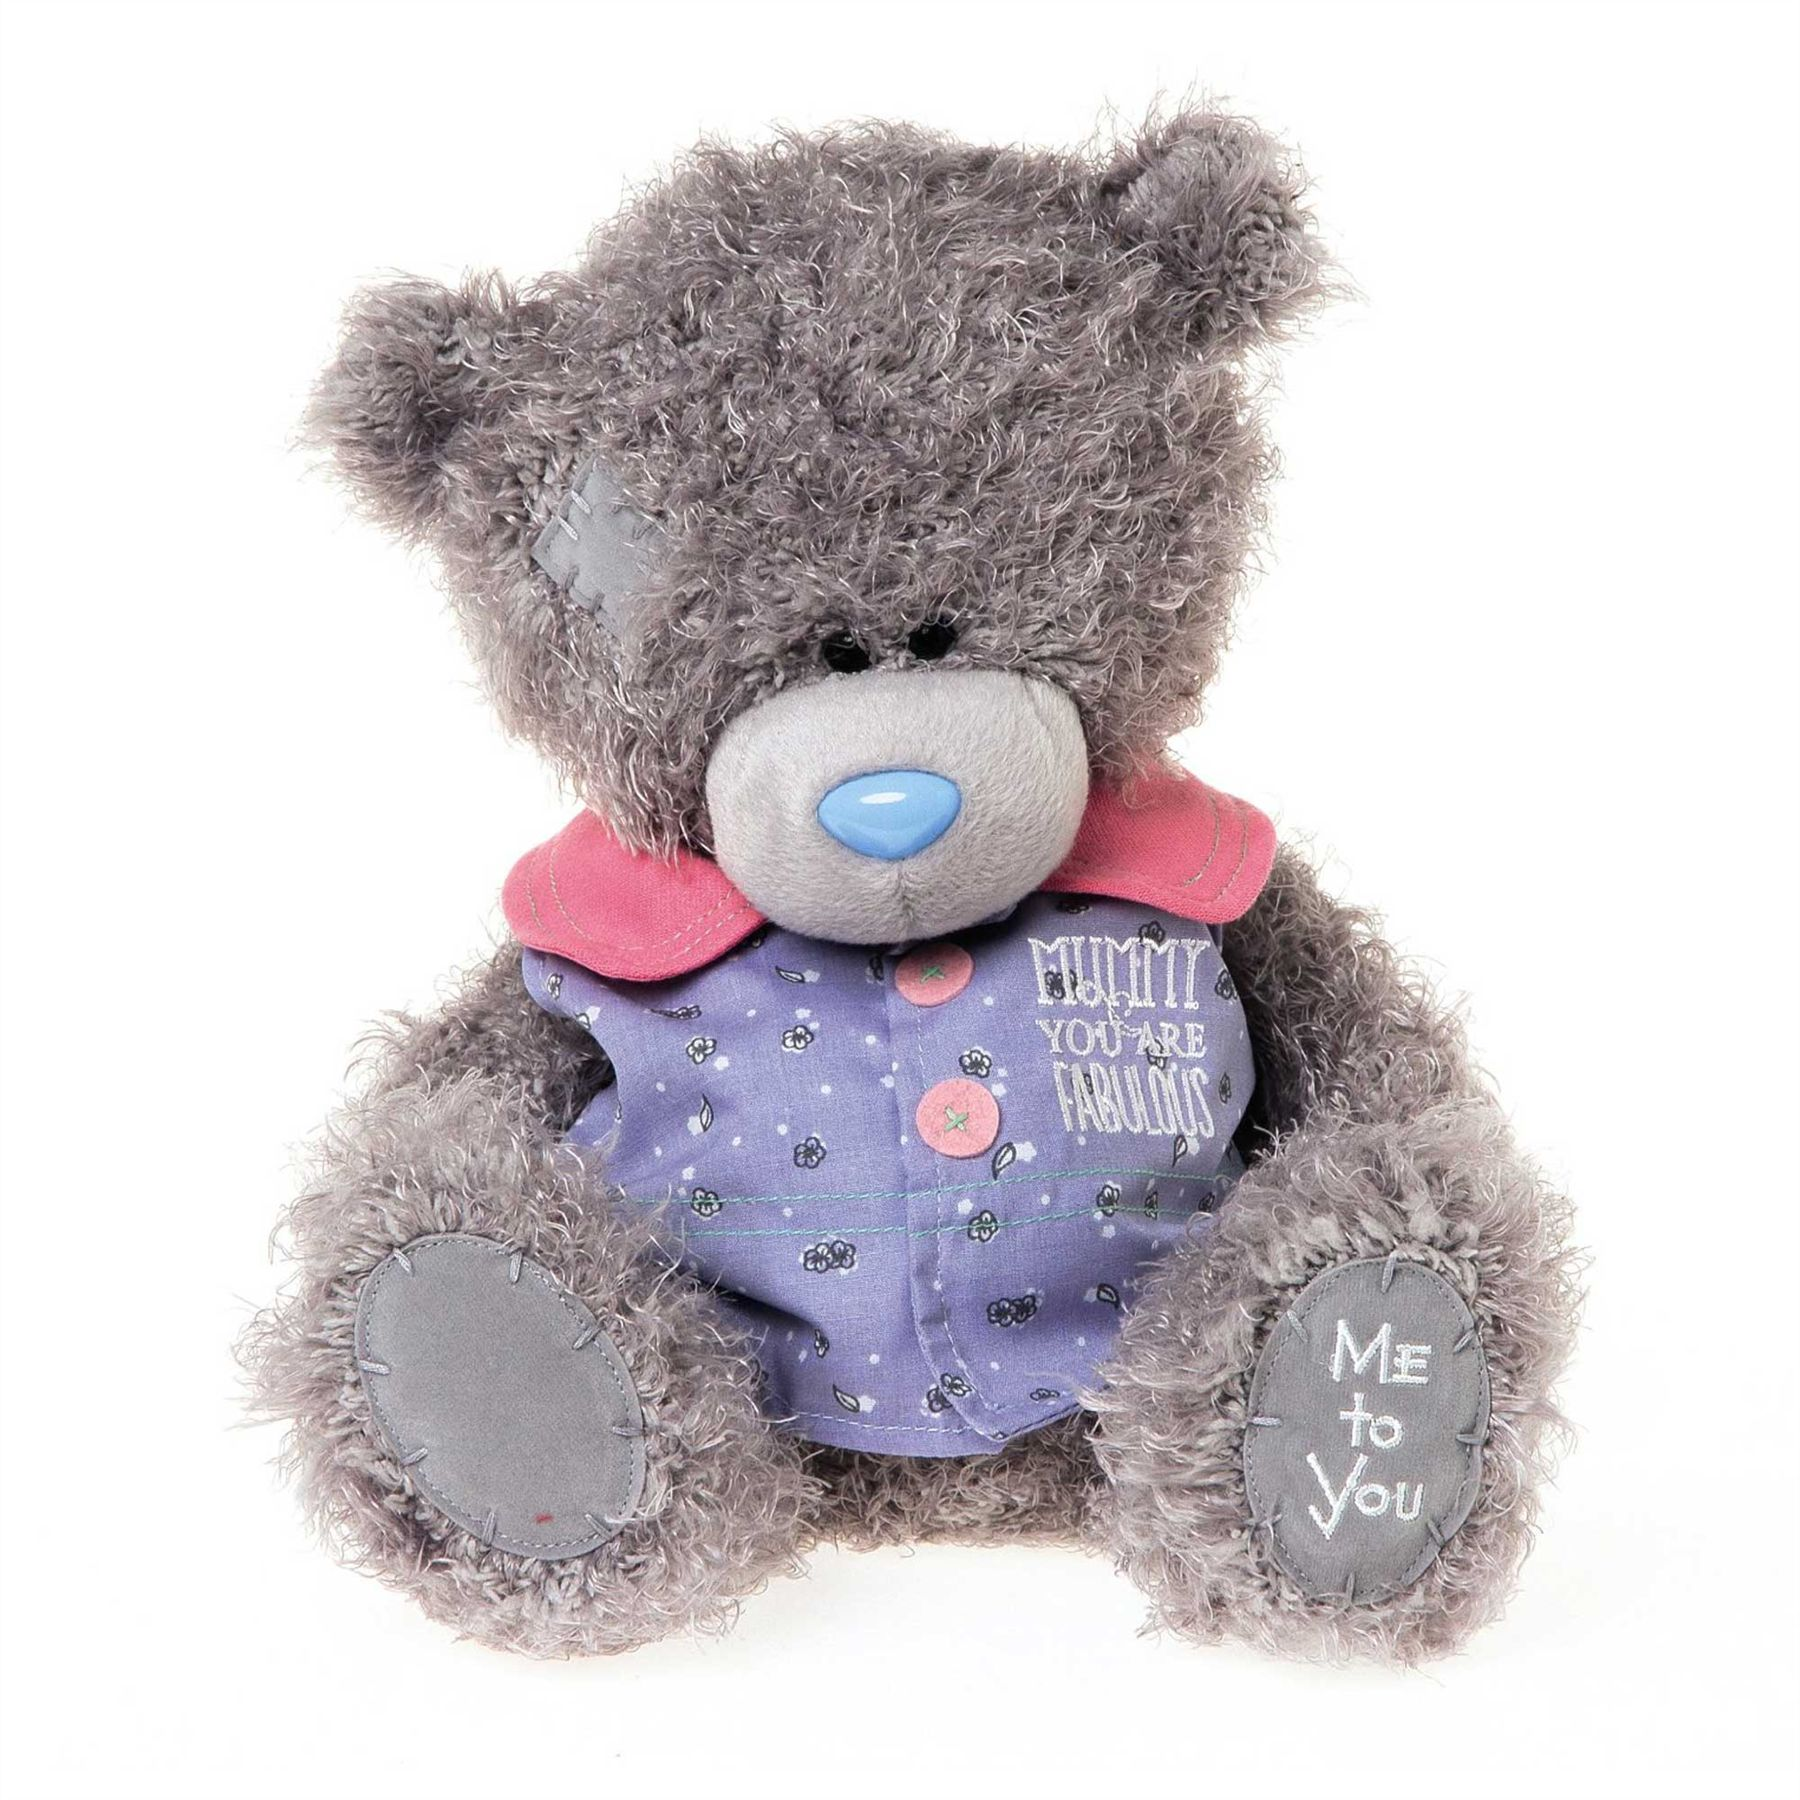 Me To You Tetty Teddy for Mothers Day Presents, Gifts for Mum